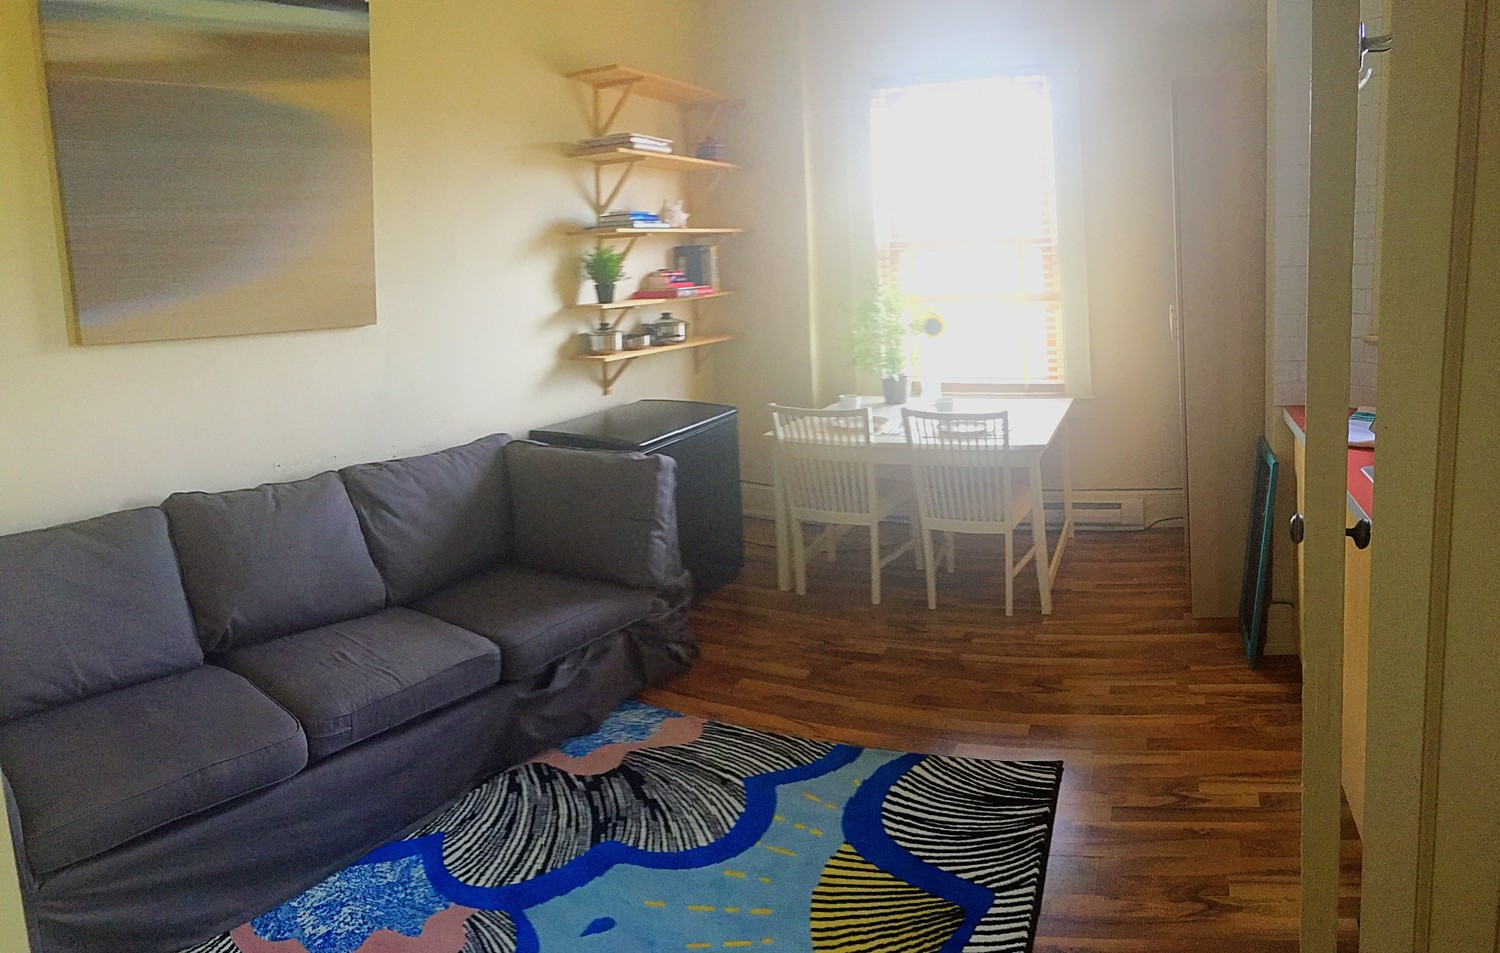 Sunny 1 Bedroom Apartment 5 min walk to George Brown Casa Loma Campus!